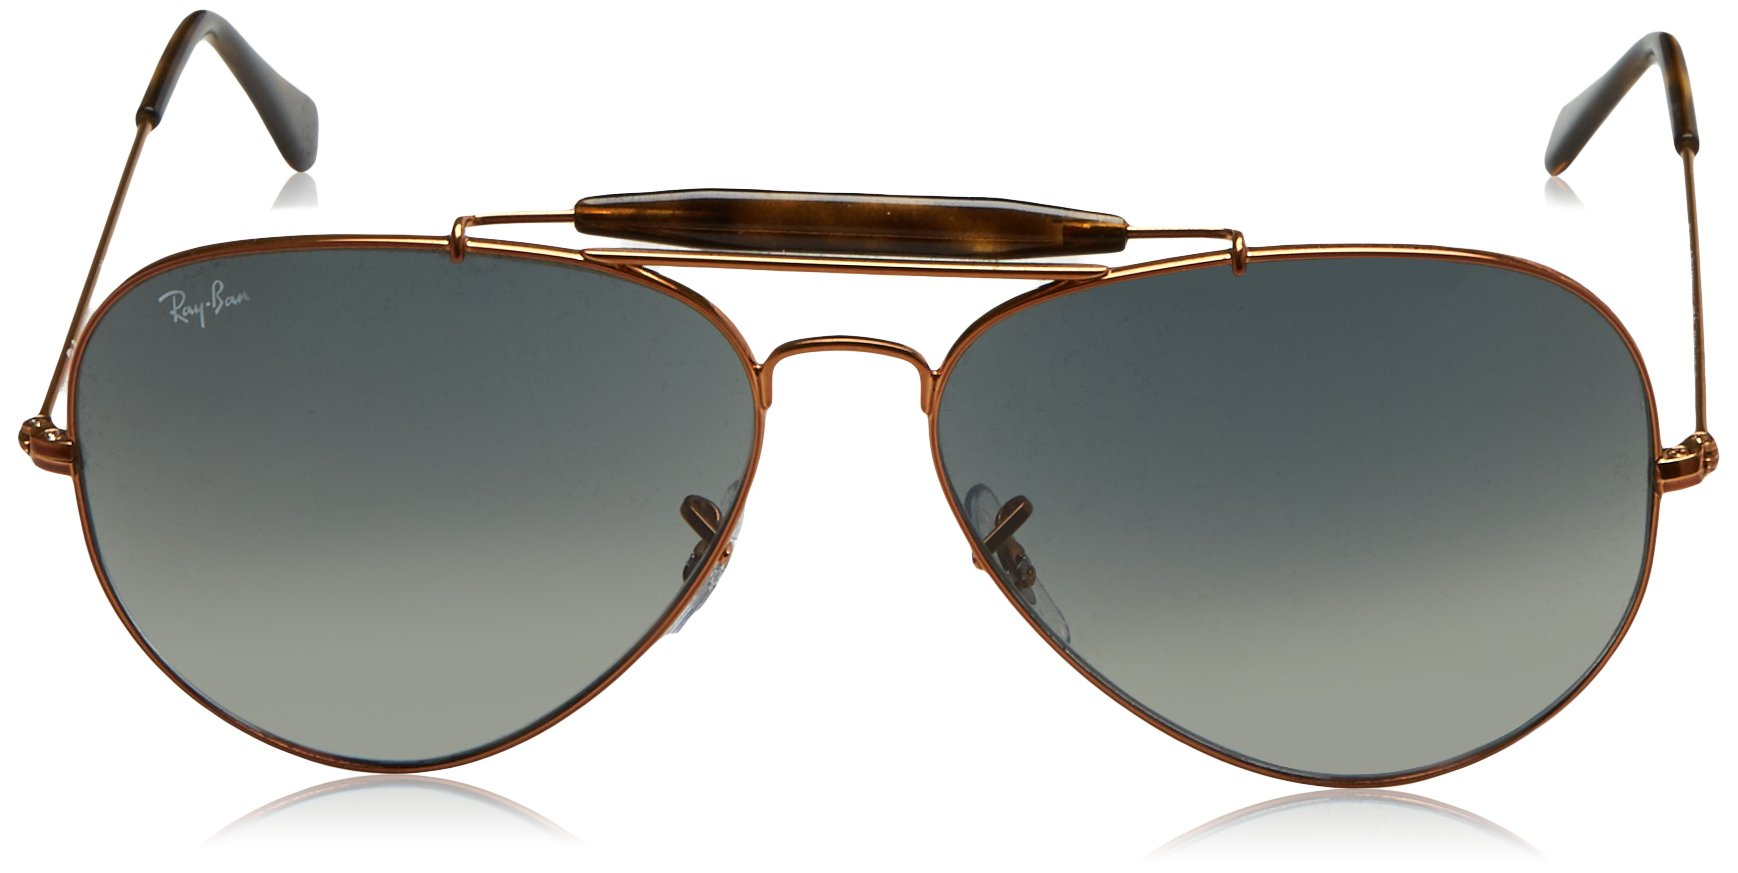 Ray-Ban Men's Outdoorsman Ii Aviator Sunglasses, Shiny Bronze, 62 mm by Ray-Ban (Image #2)